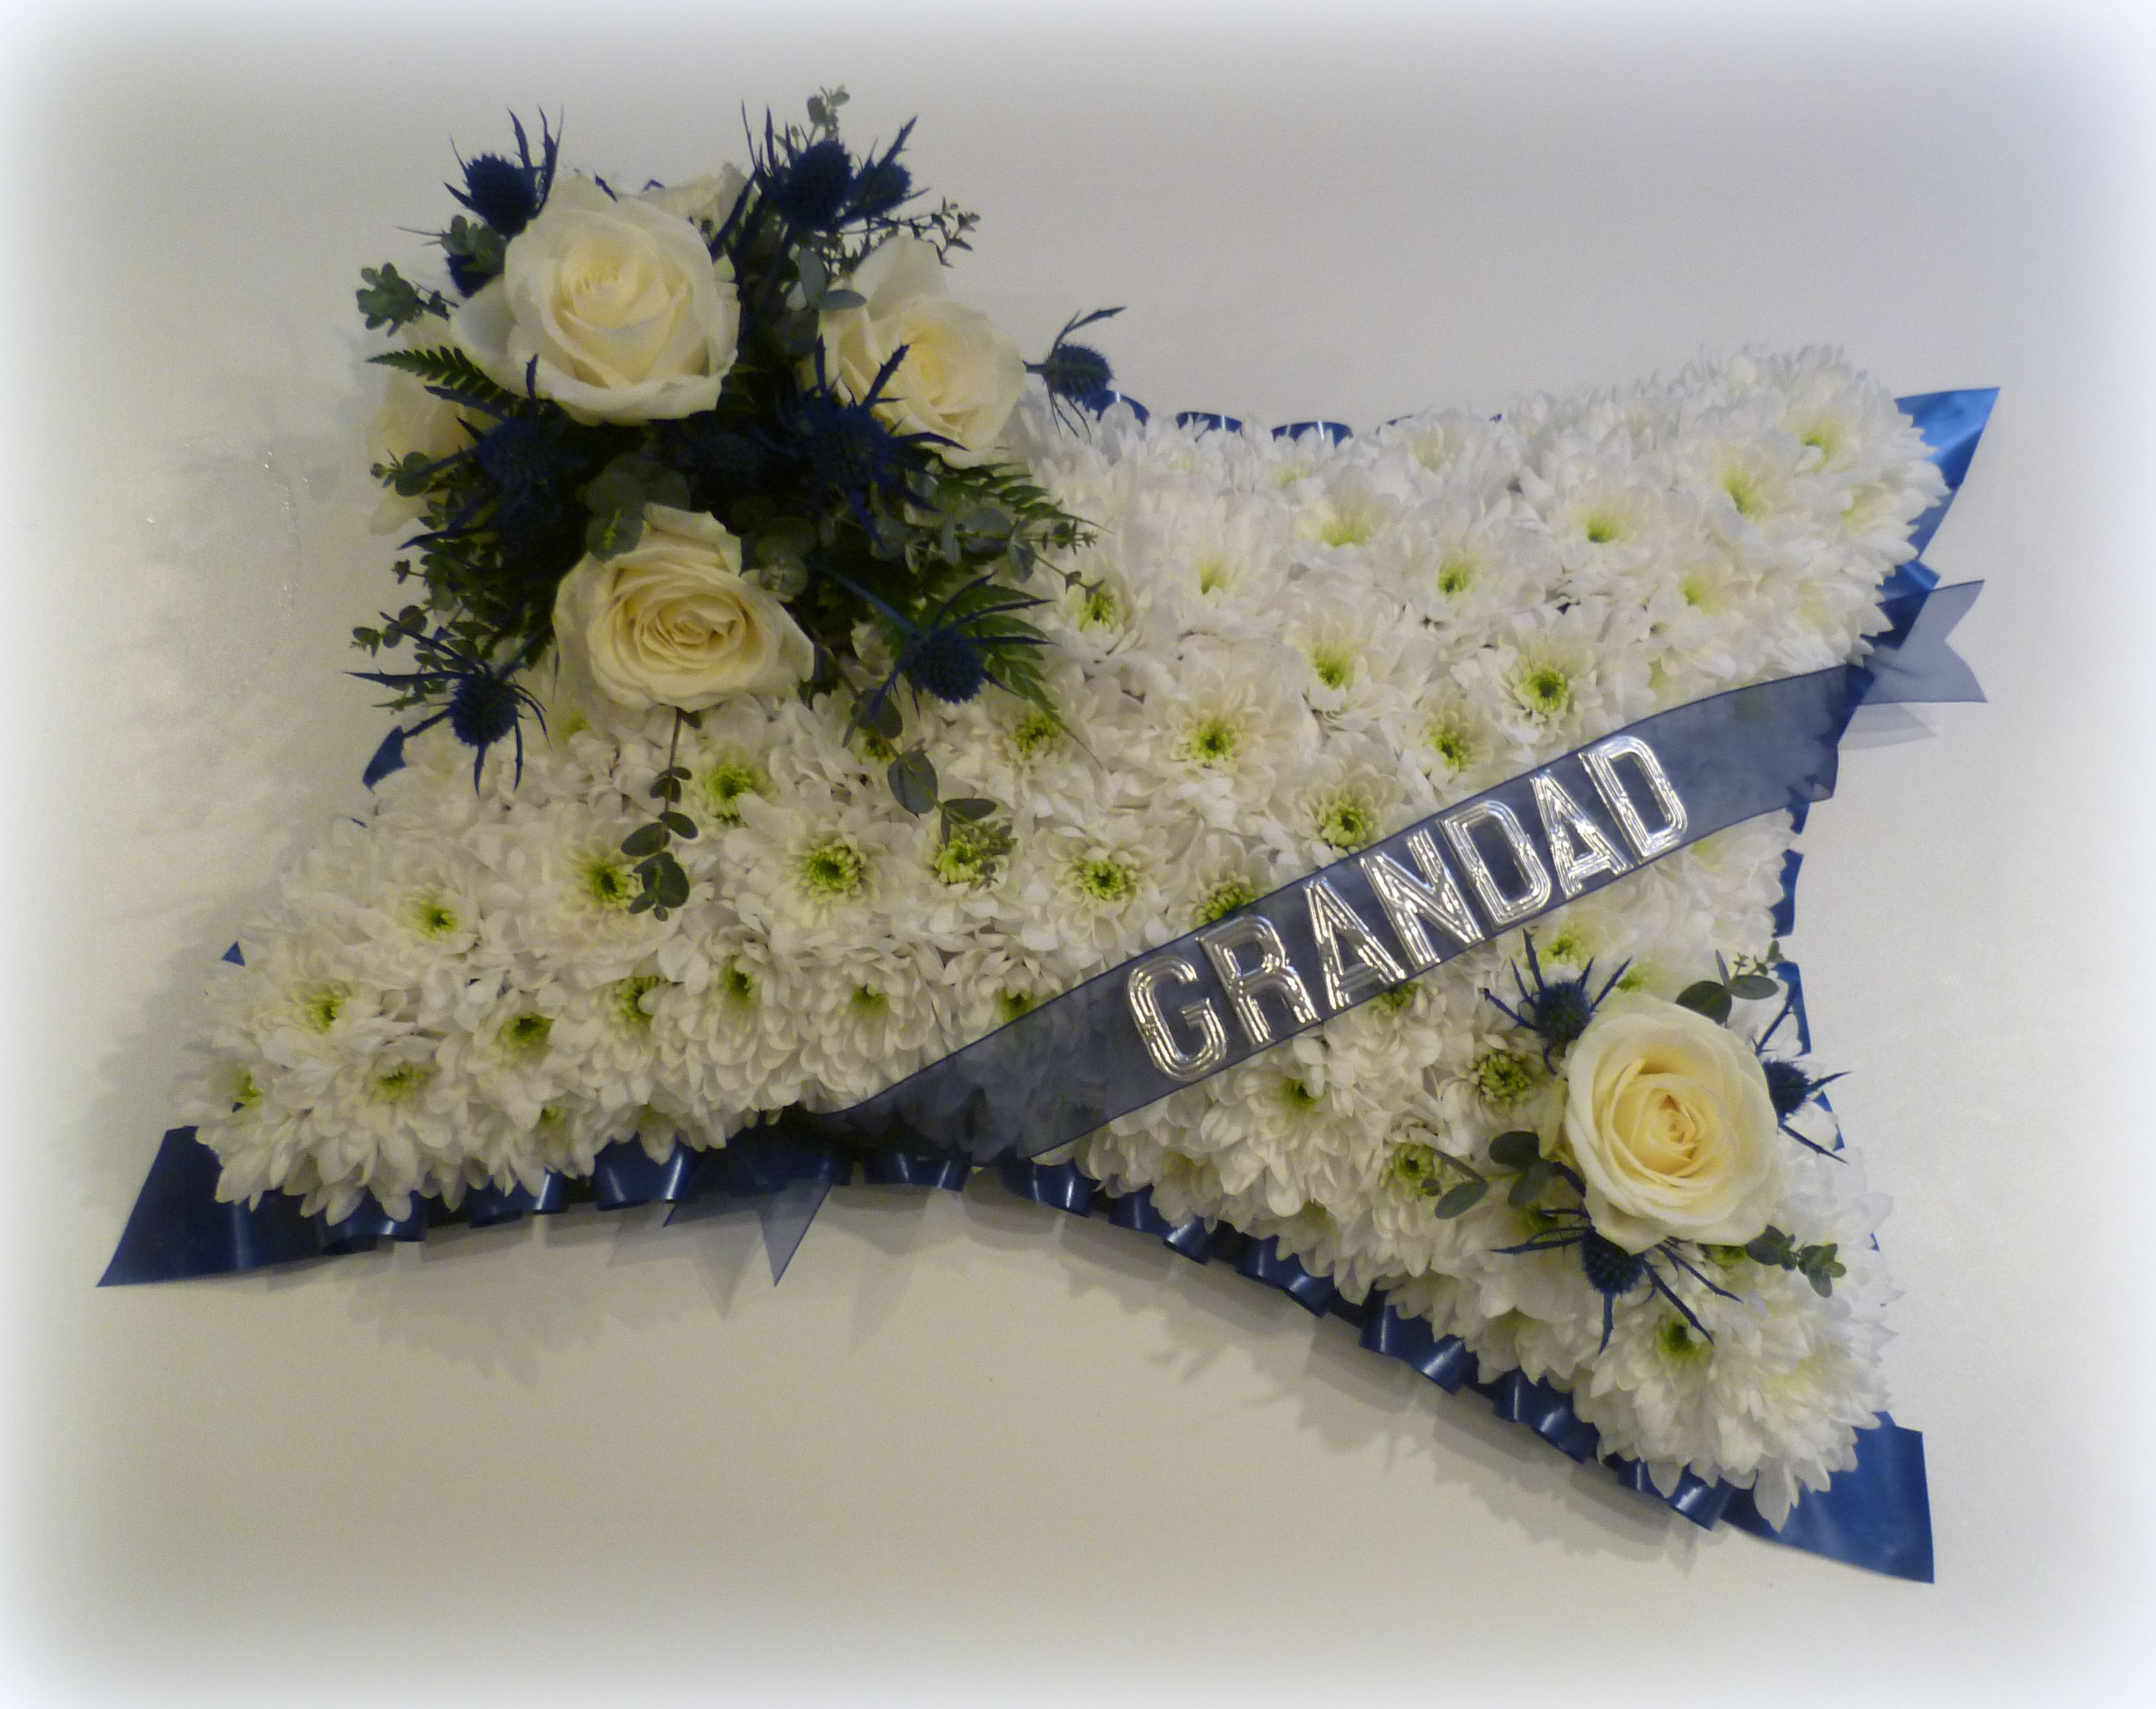 Based pillow floral funeral tribute with grandad wording houghton based pillow floral funeral tribute with grandad wording houghton regis florist izmirmasajfo